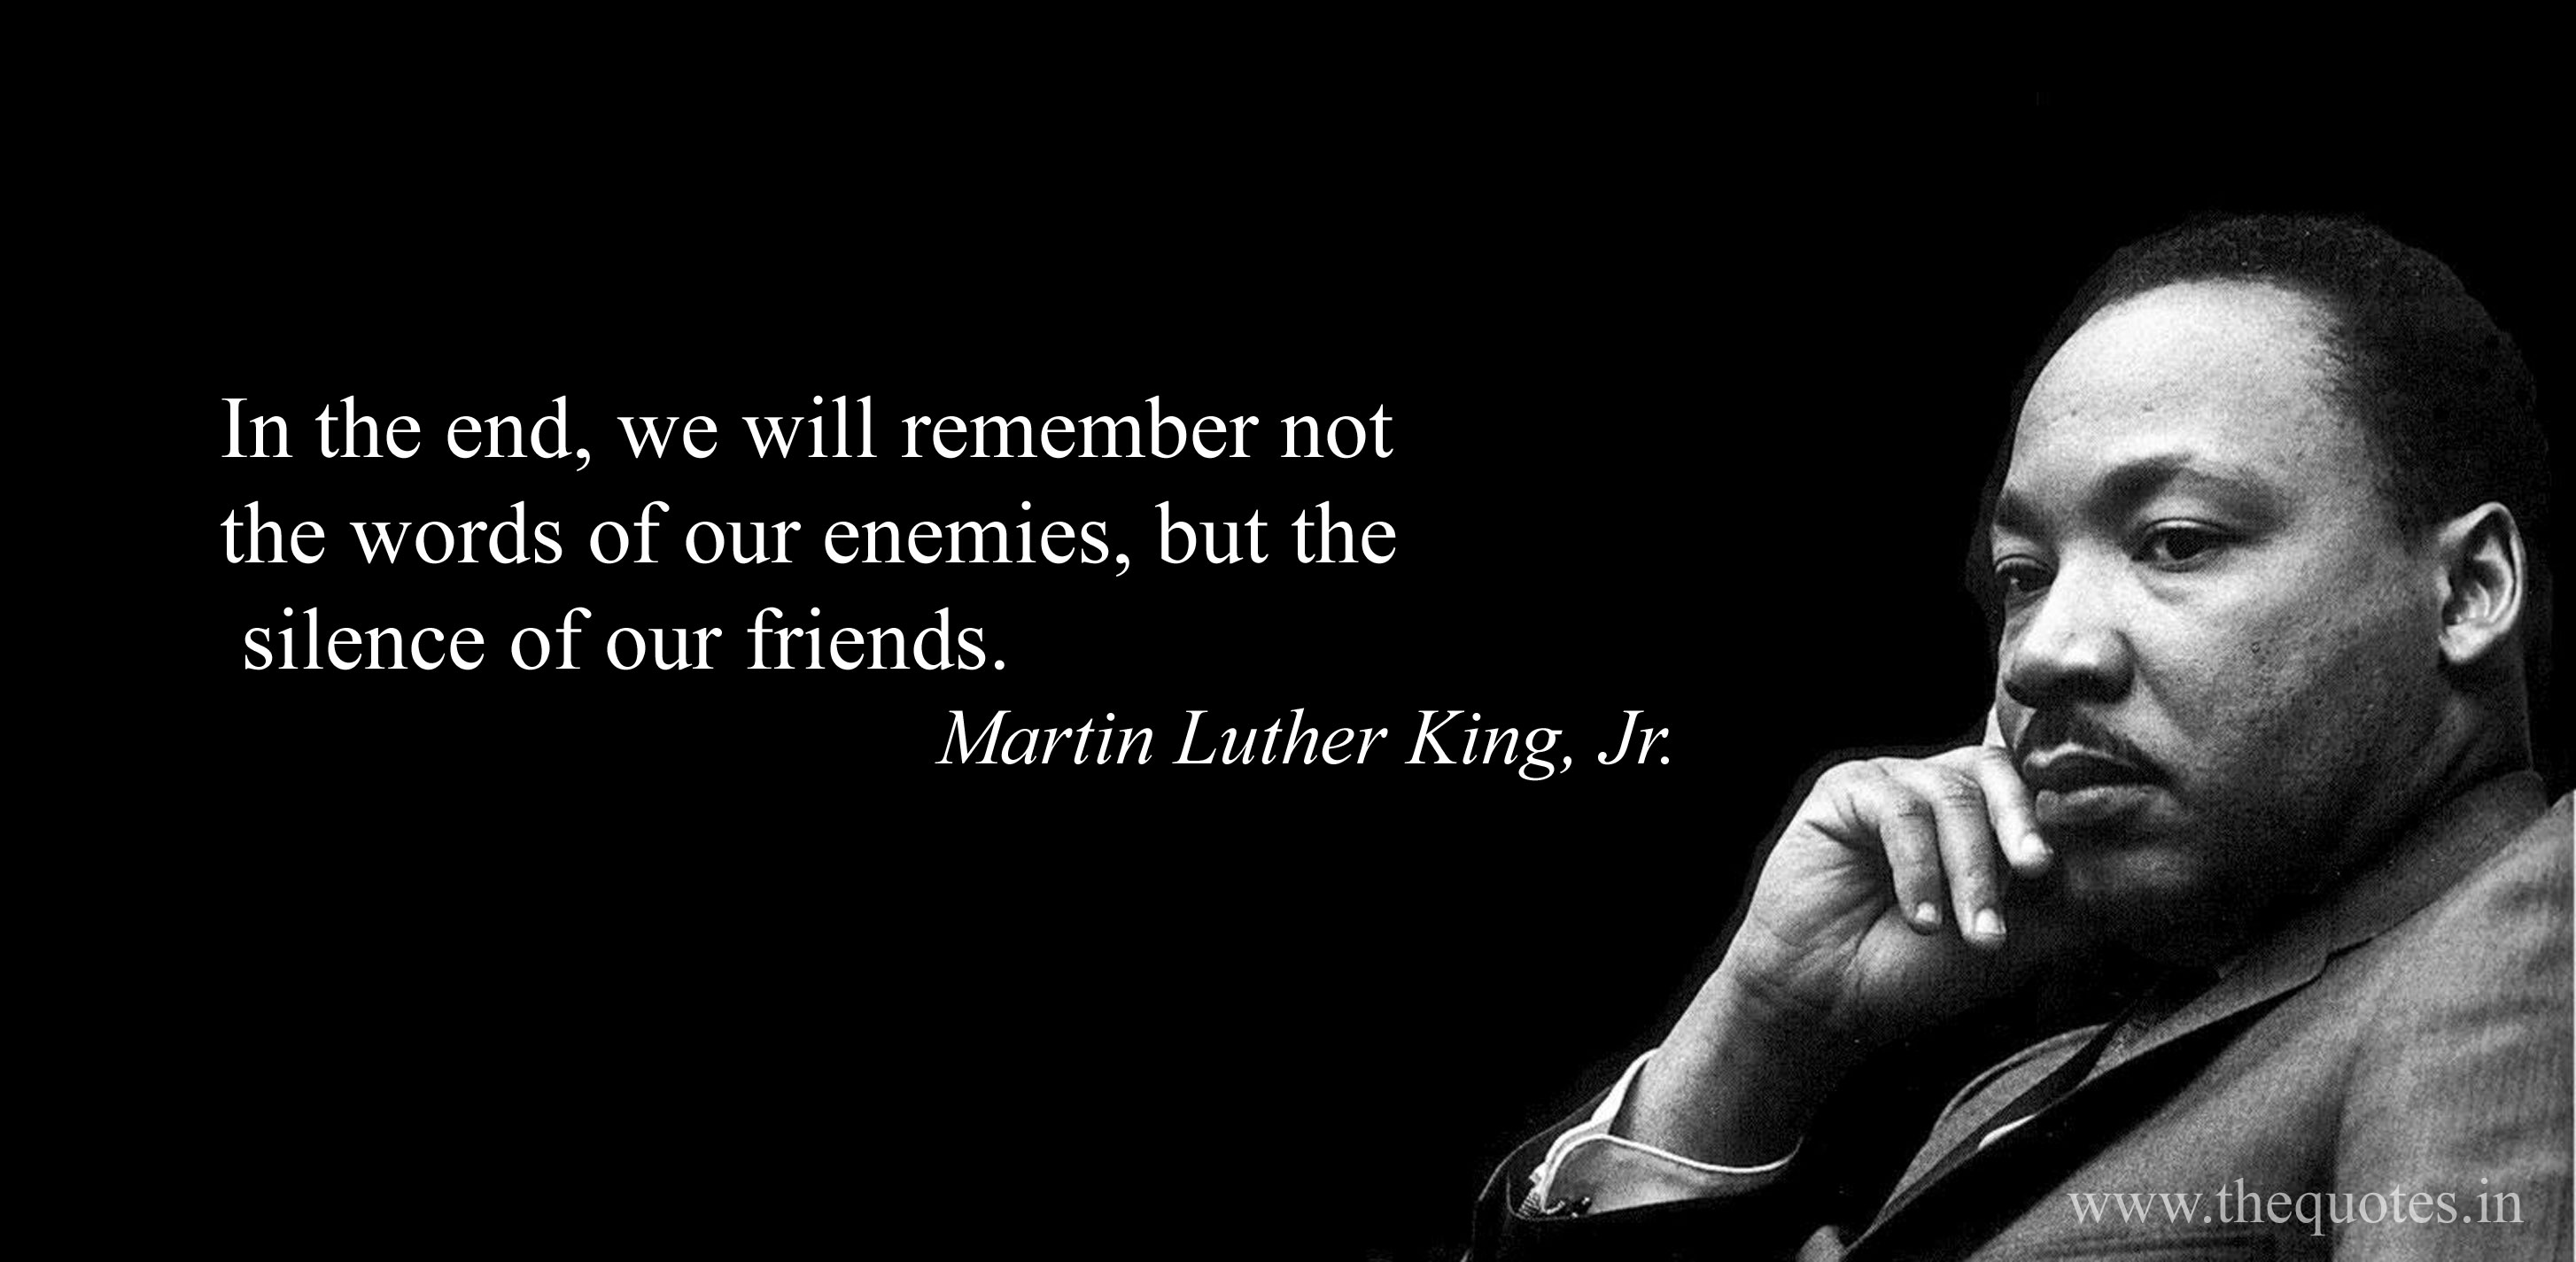 King-Jr-Quotes-7